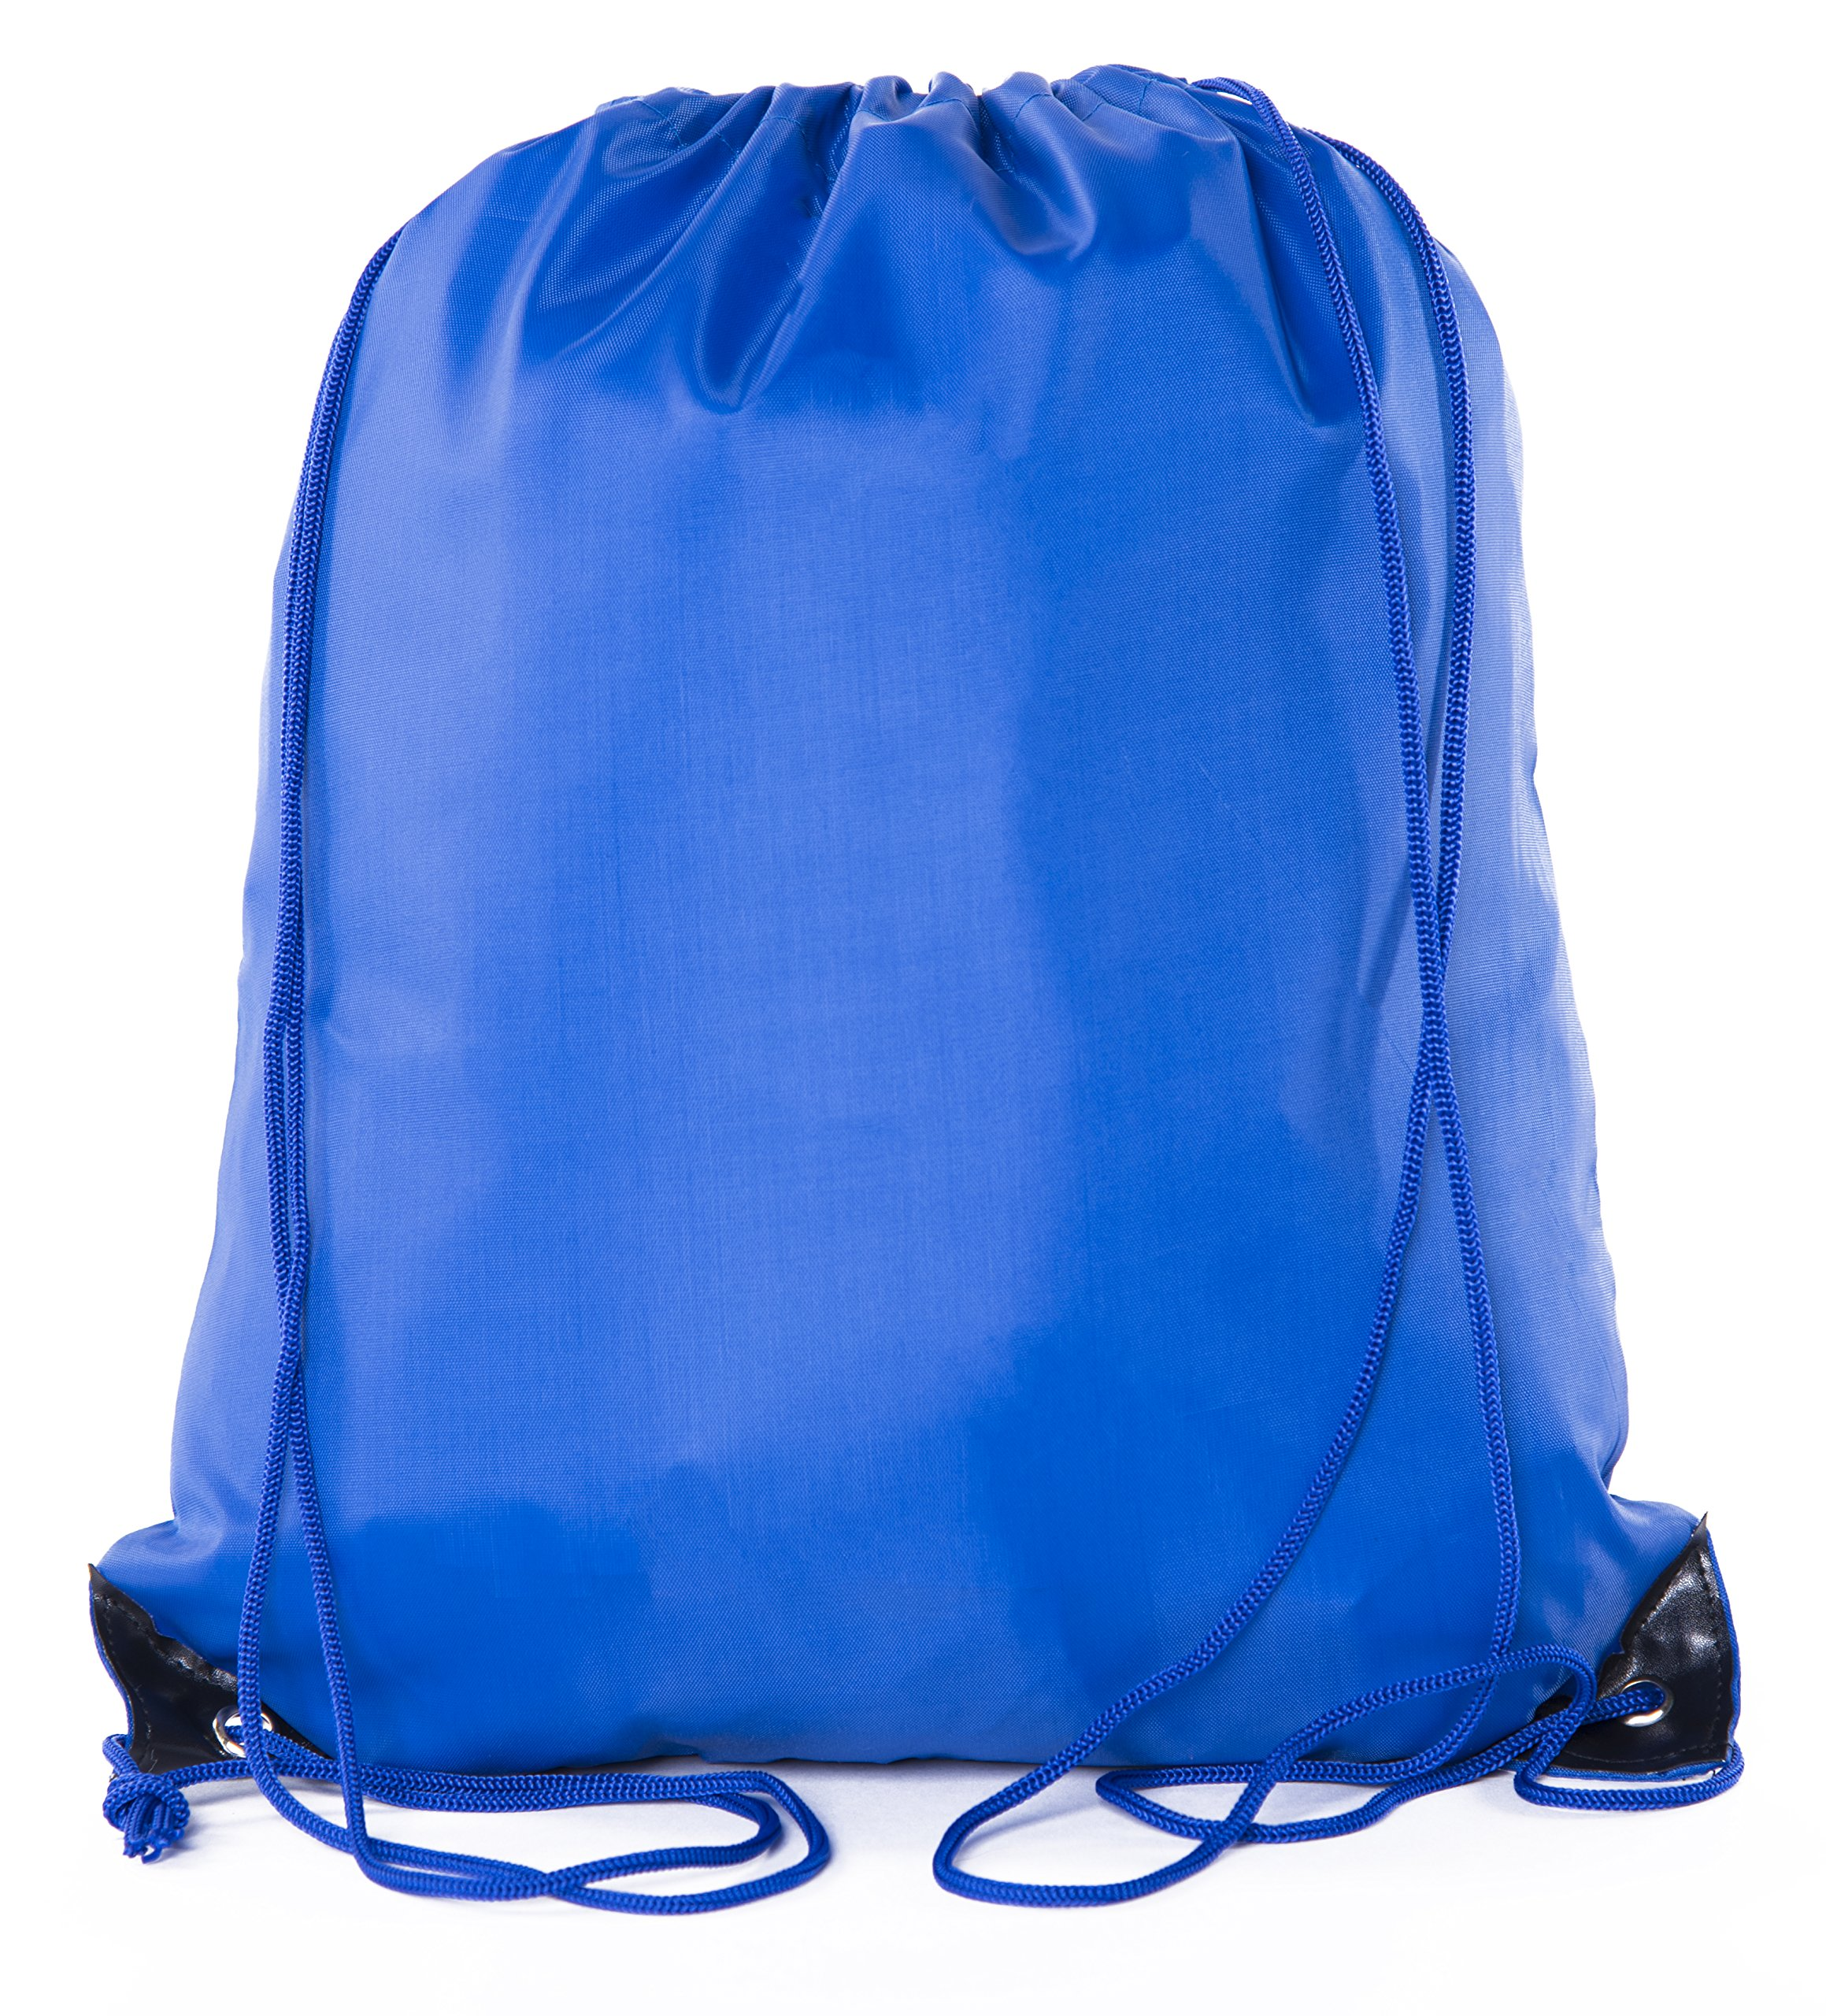 Mato & Hash Basic Drawstring Tote Cinch Sack Promotional Backpack Bag - 100PK Royal CA2500 - 2